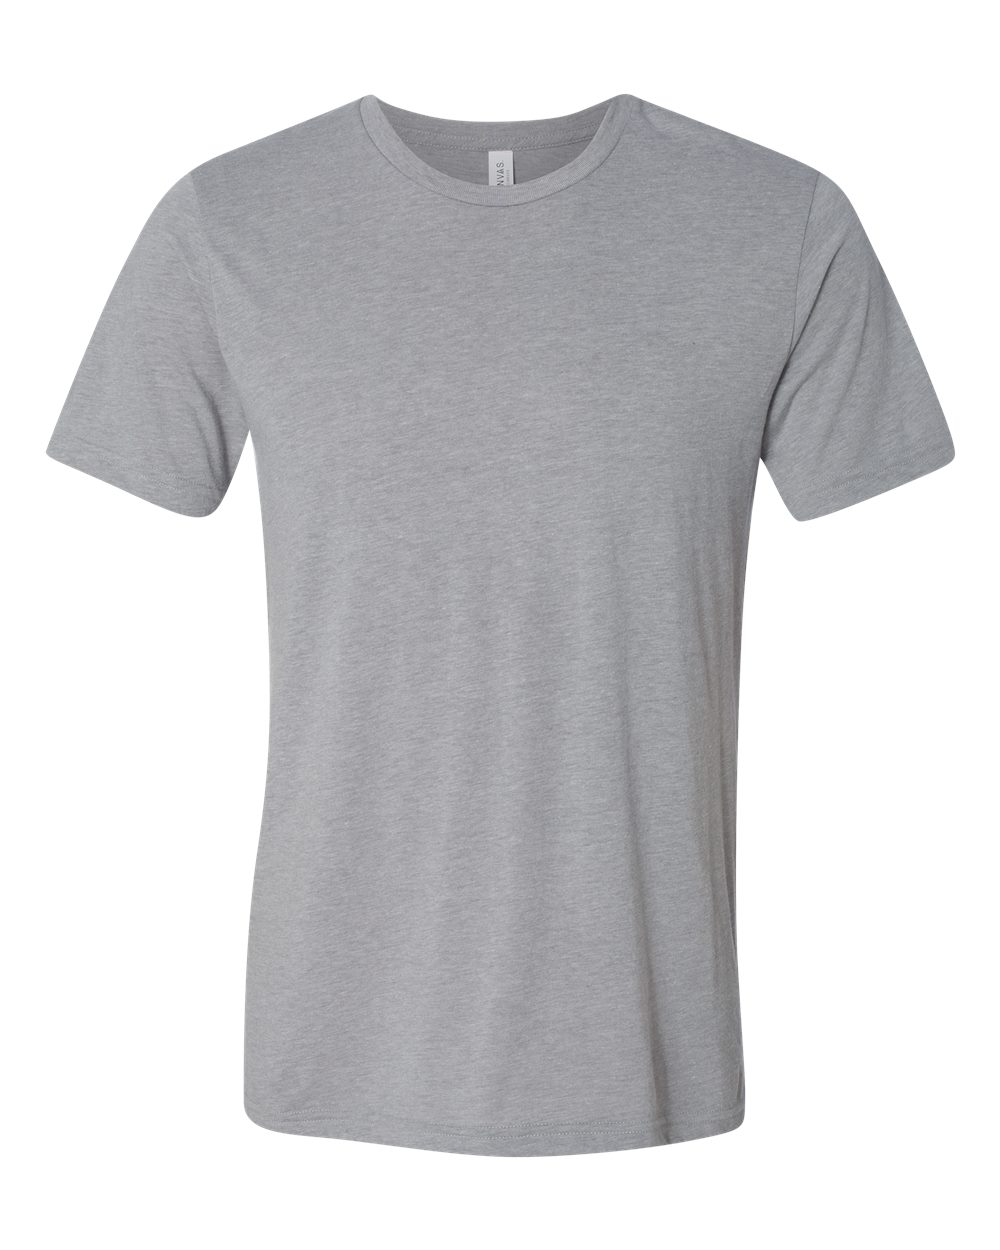 click to view Athletic Grey Triblend